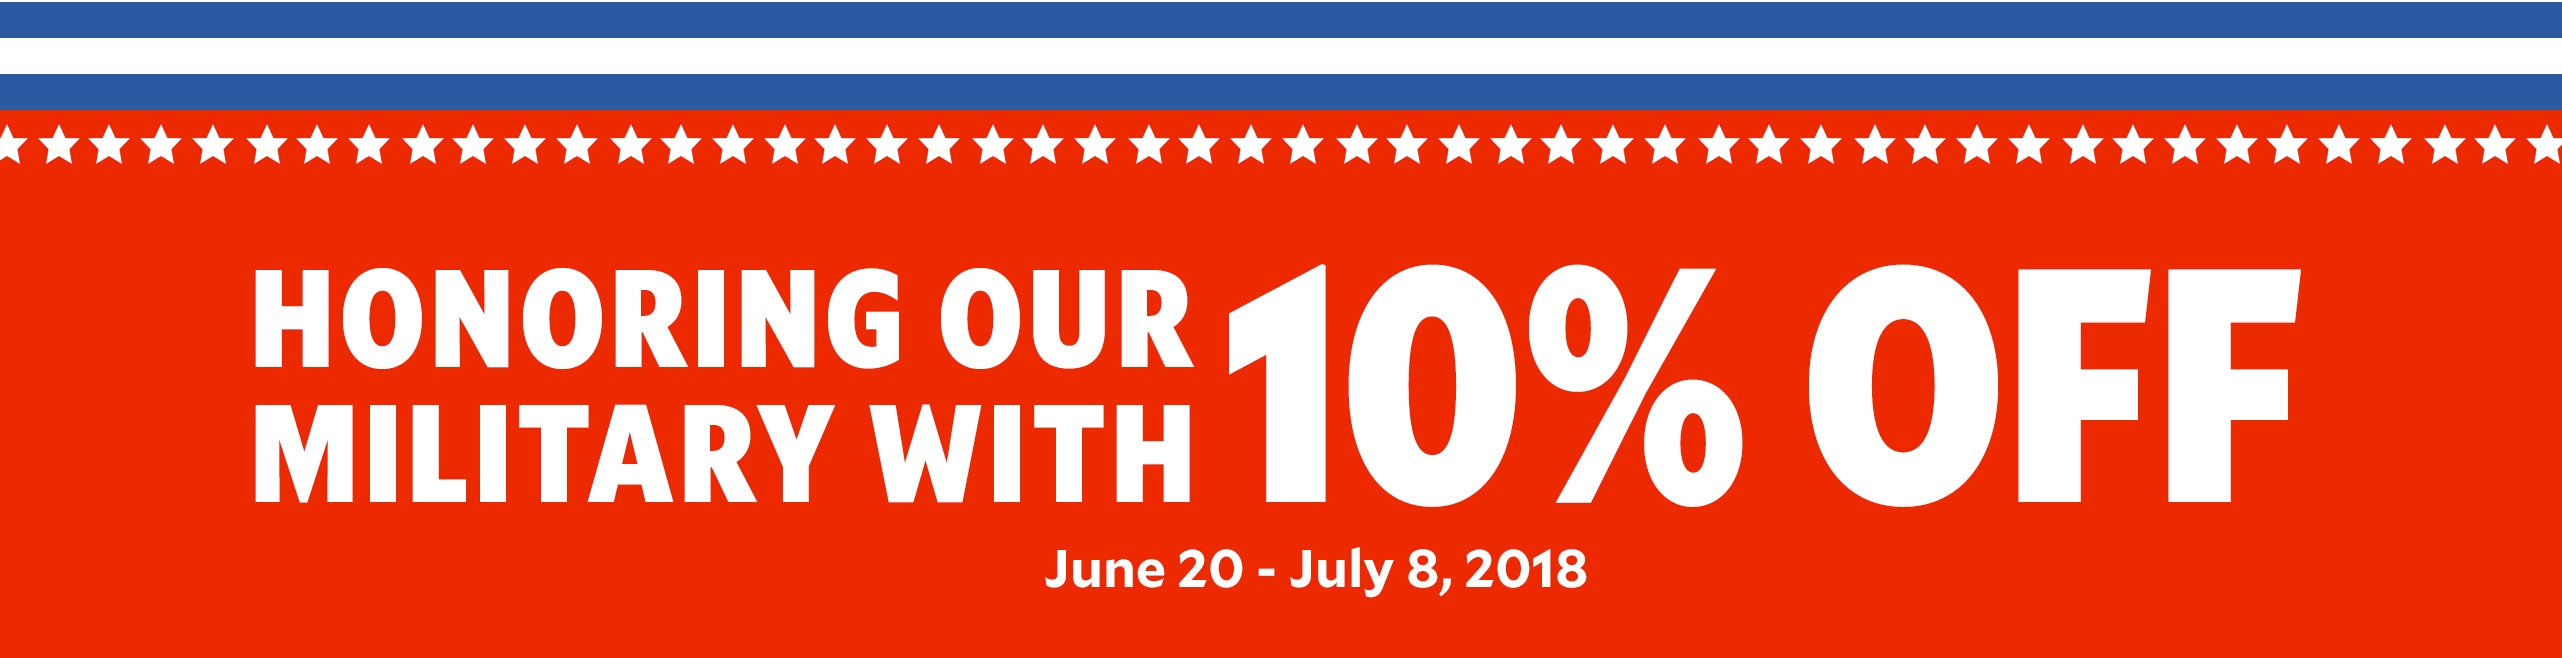 Honoring Our Military 10% Off, June 20th - July 8th, 2018